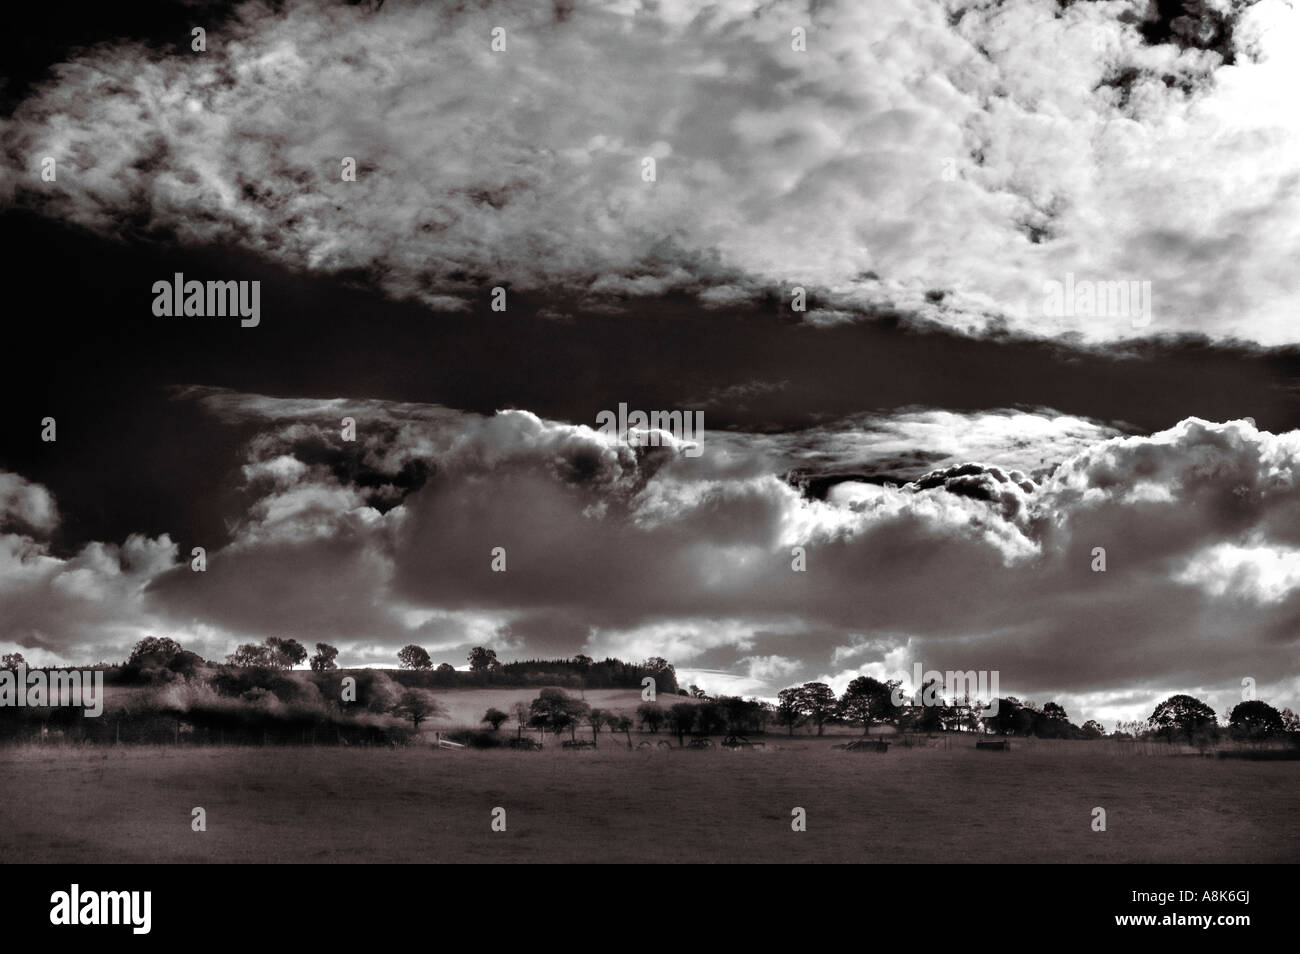 Black and White rural landscape in South Wales with a big dramatic darkening sky - Stock Image